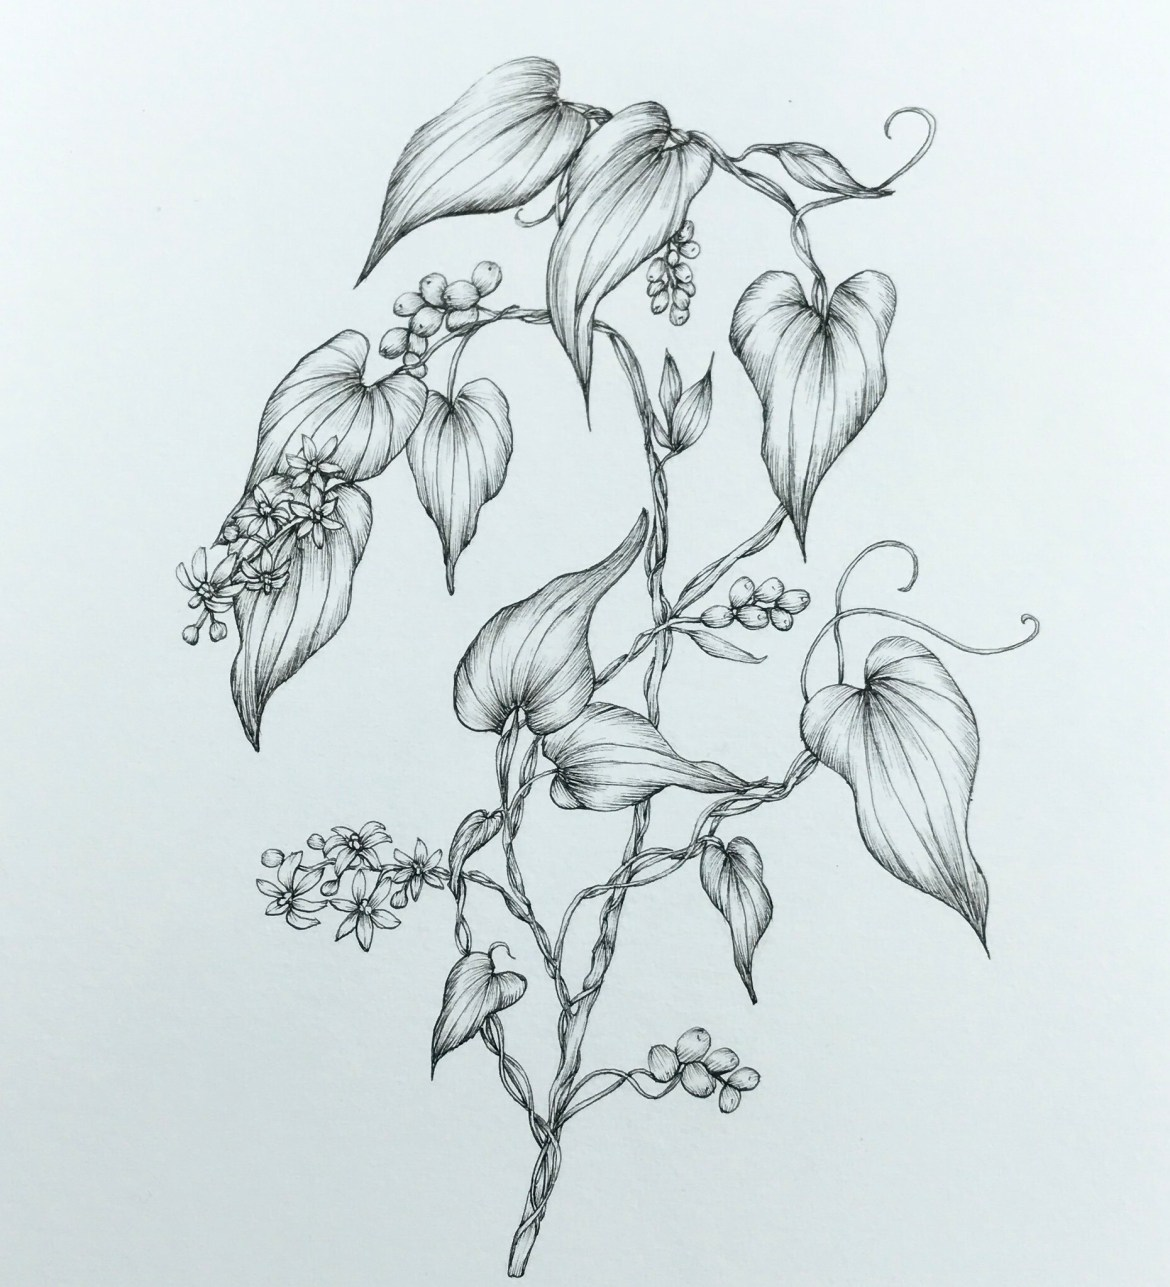 bryony botanical illustration